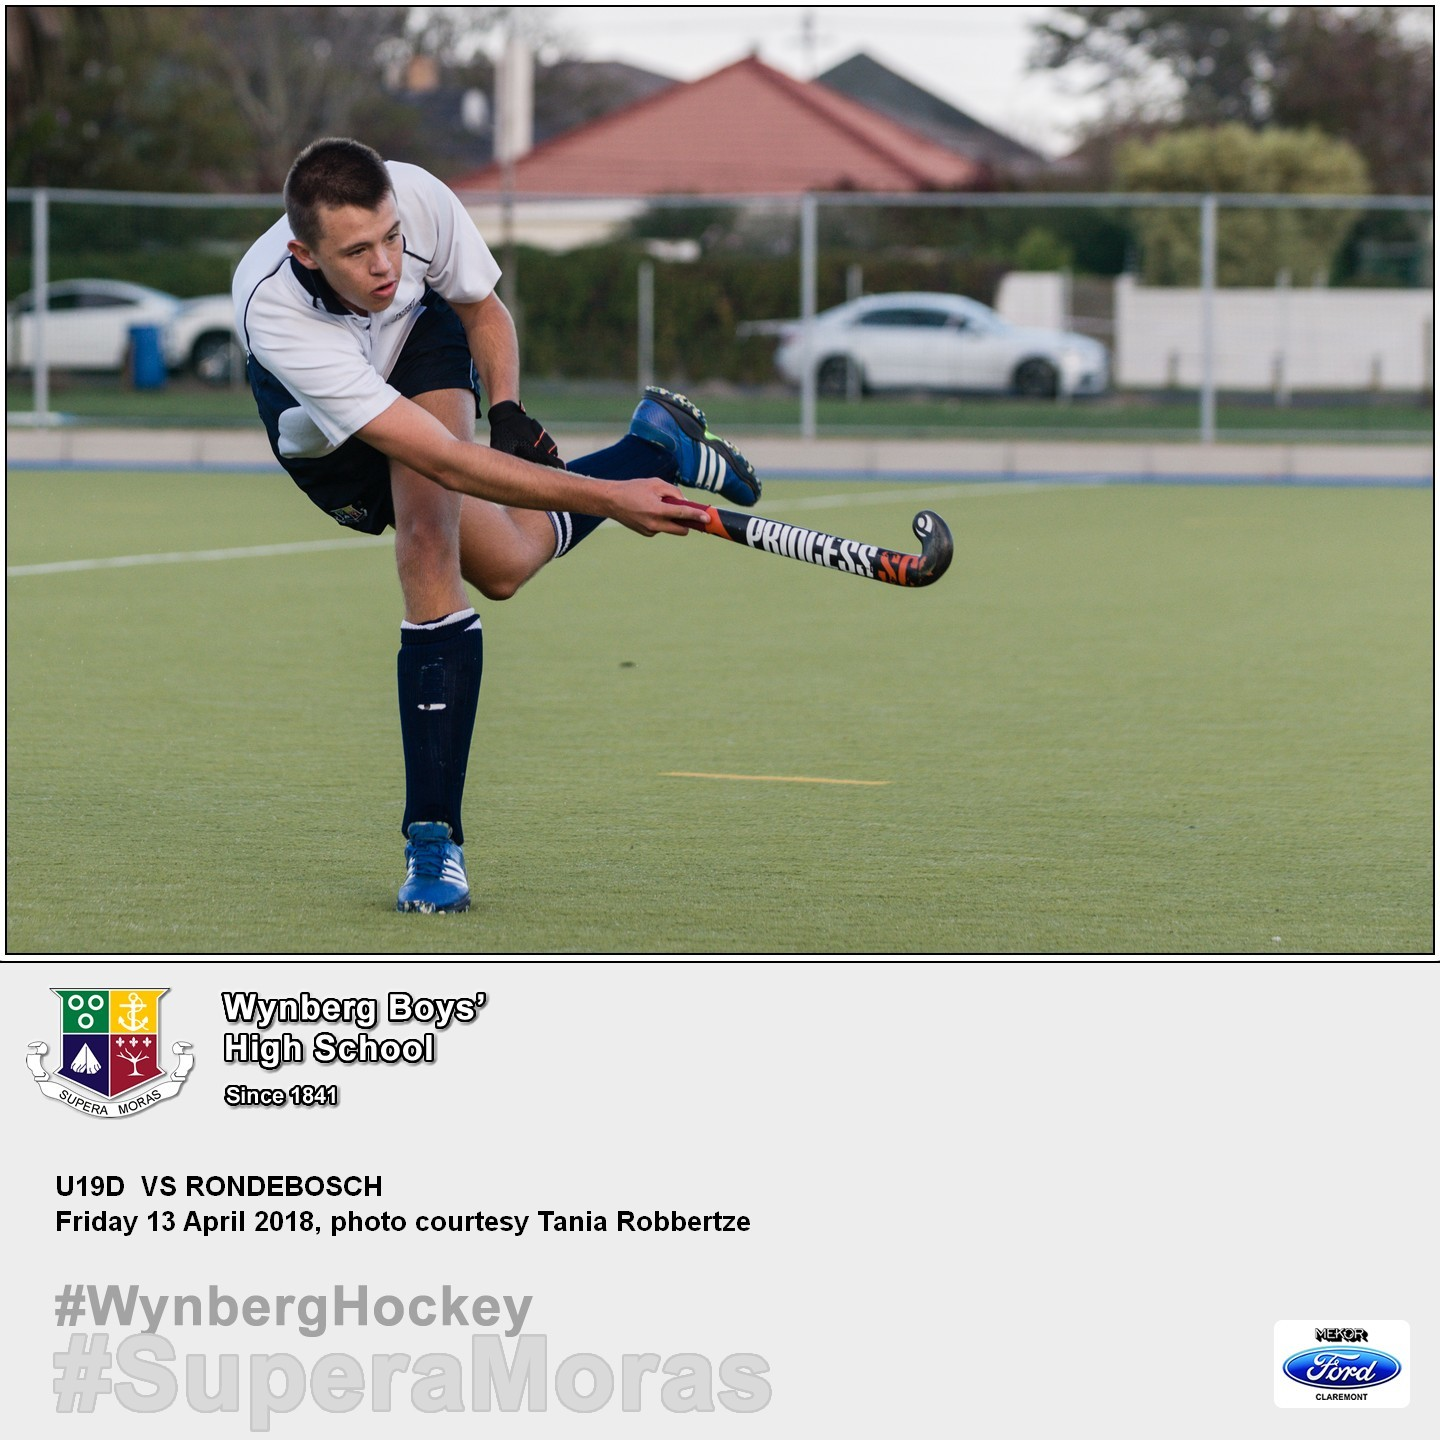 U19C vs Rondebosch, Friday 13 April 2018